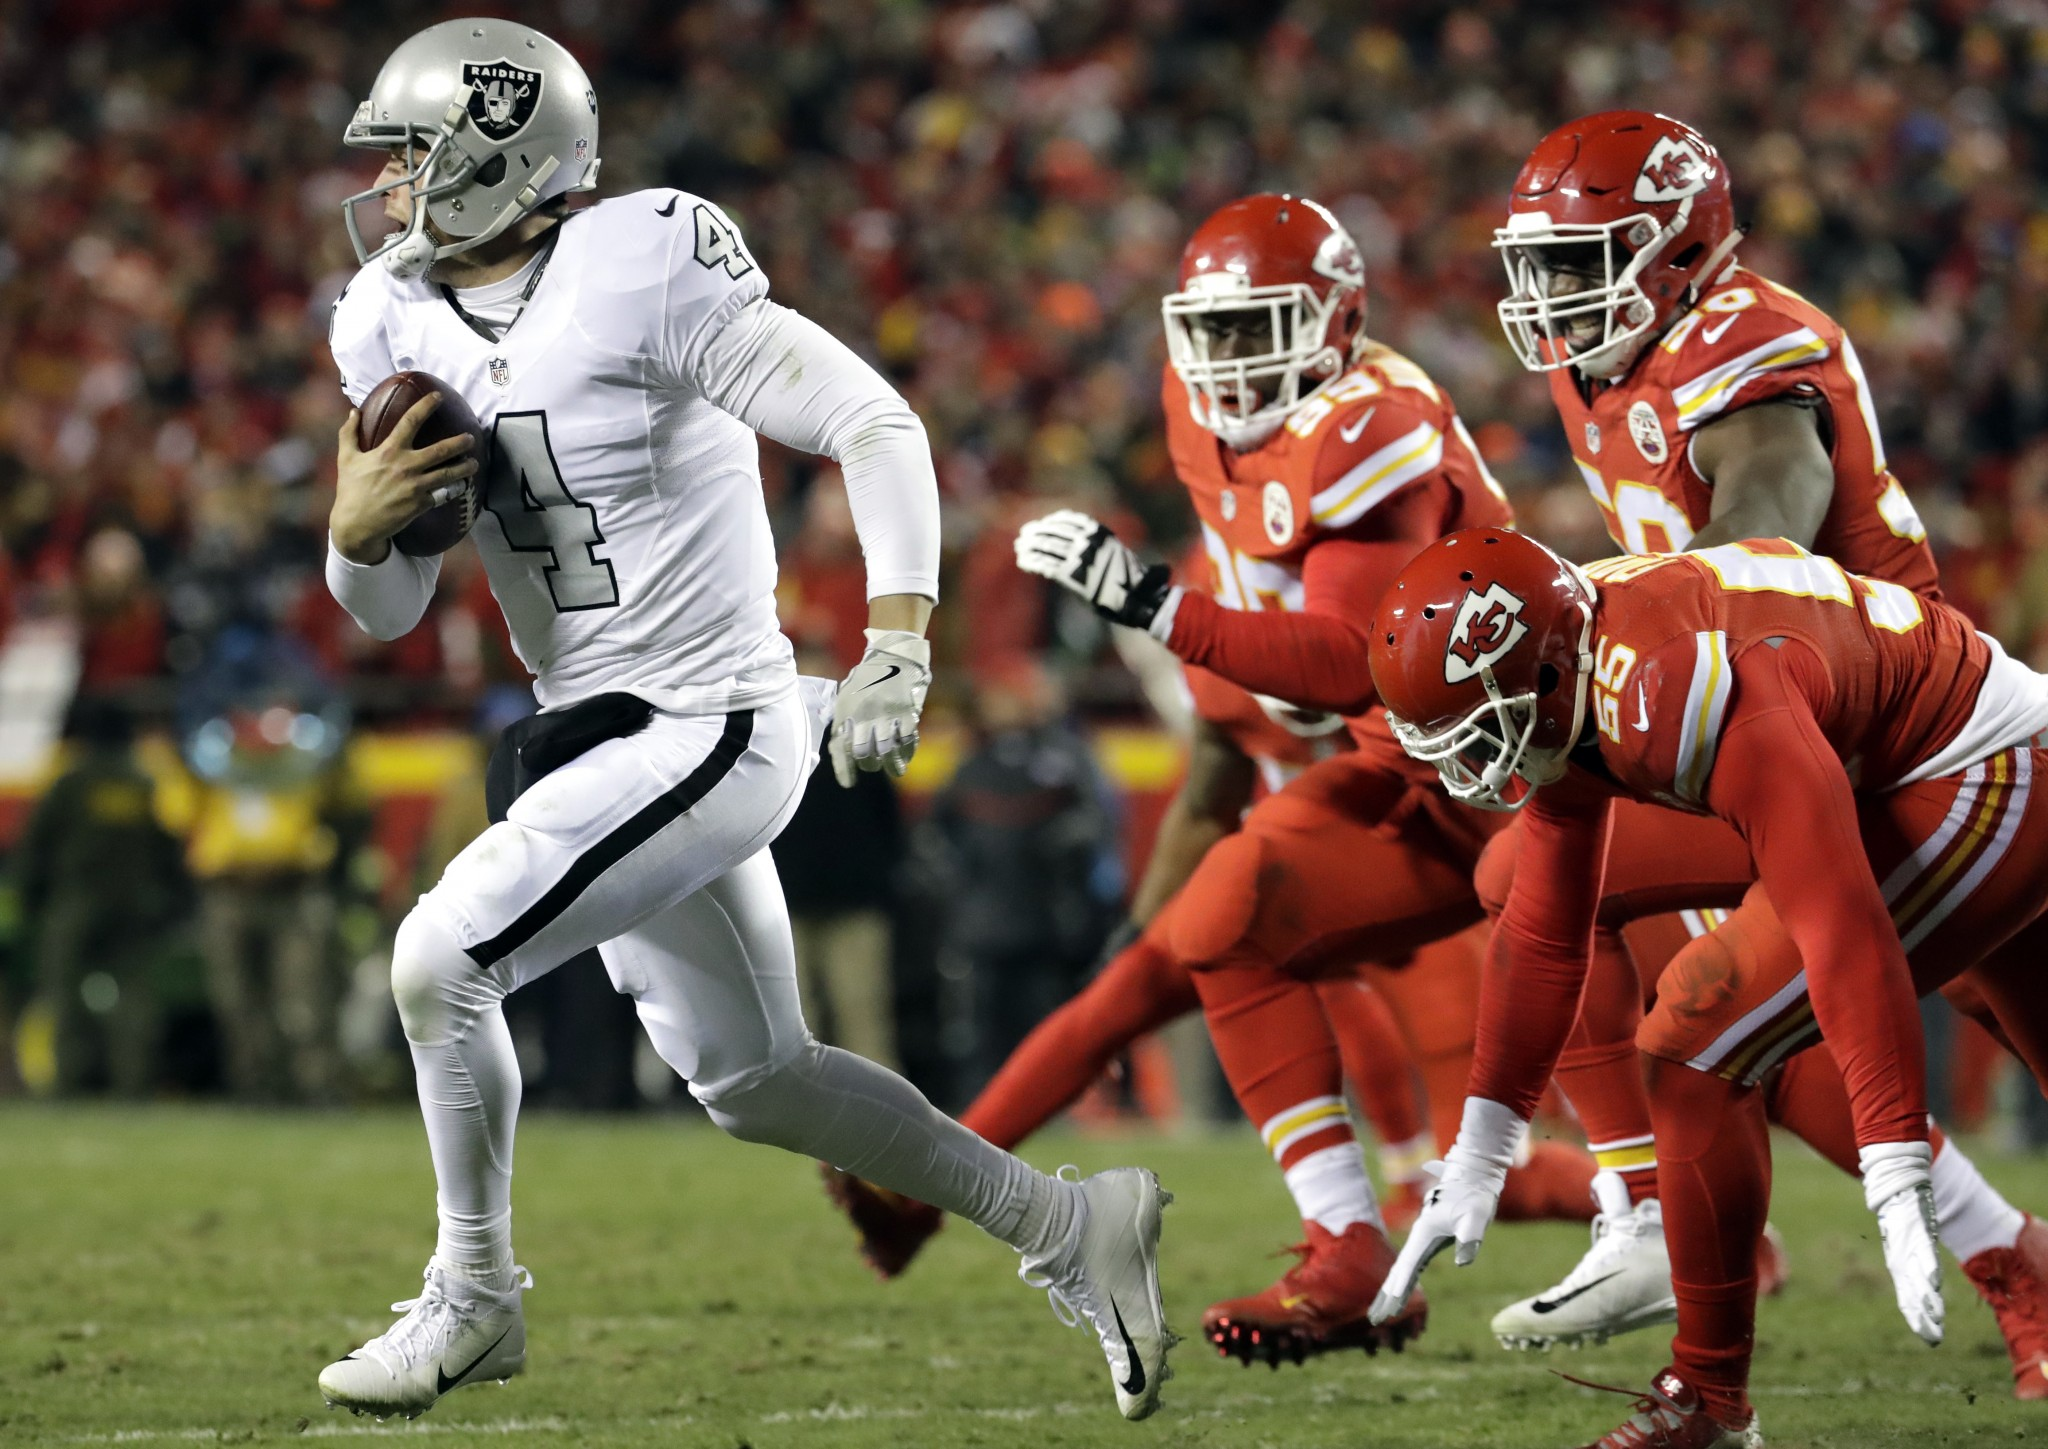 Derek Carr was doing great until he ran into the Chiefs (again)